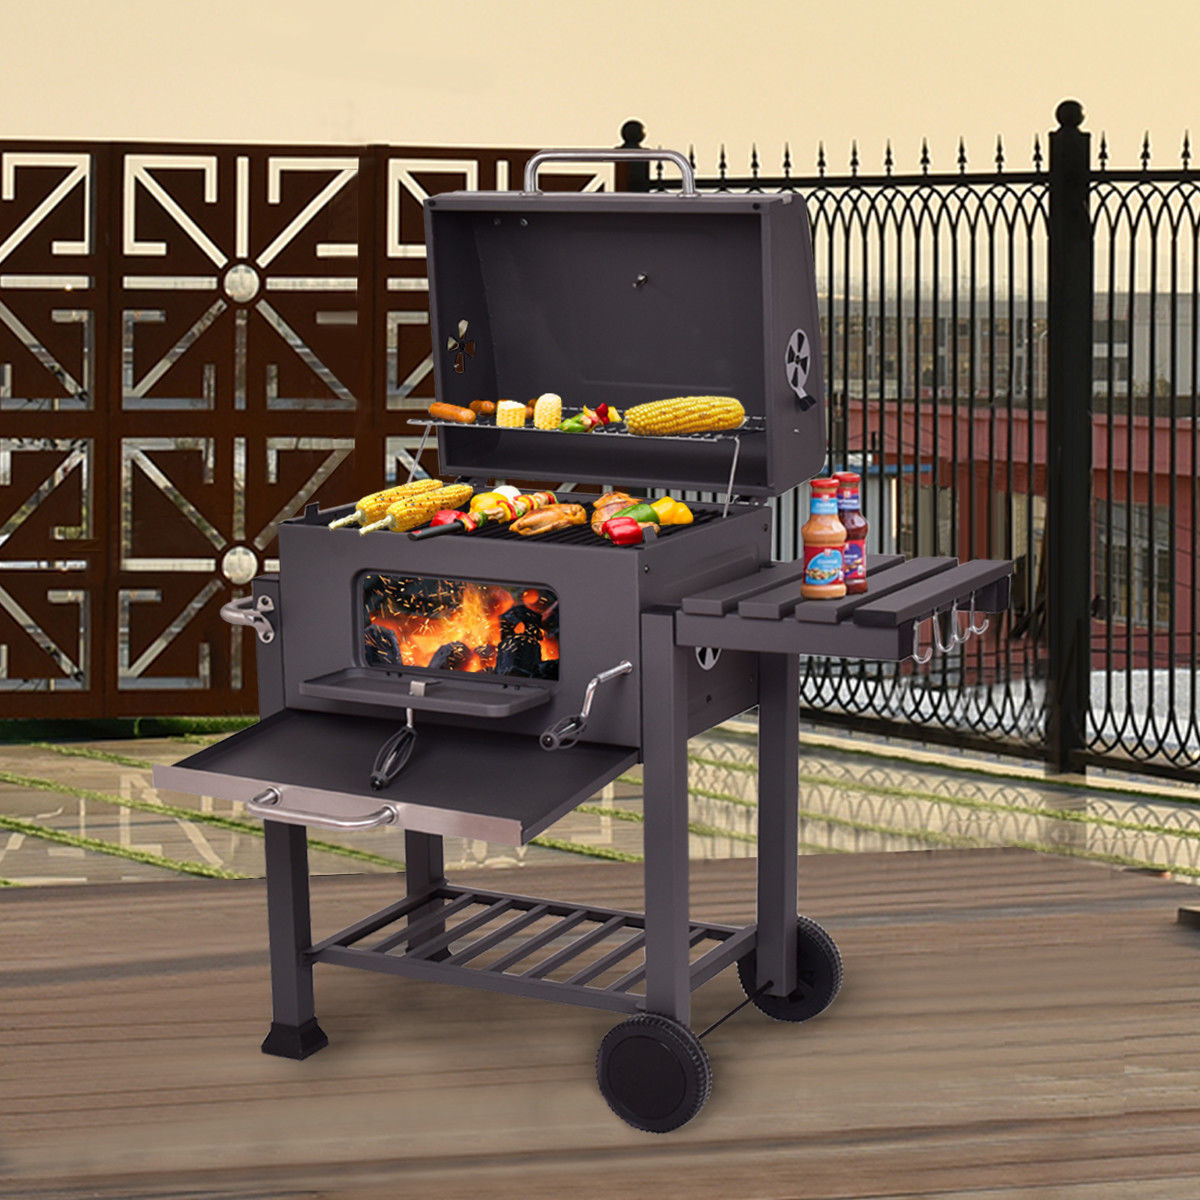 Costway Charcoal Grill Barbecue BBQ Grill Outdoor Patio Backyard Cooking Wheels Portable by Costway